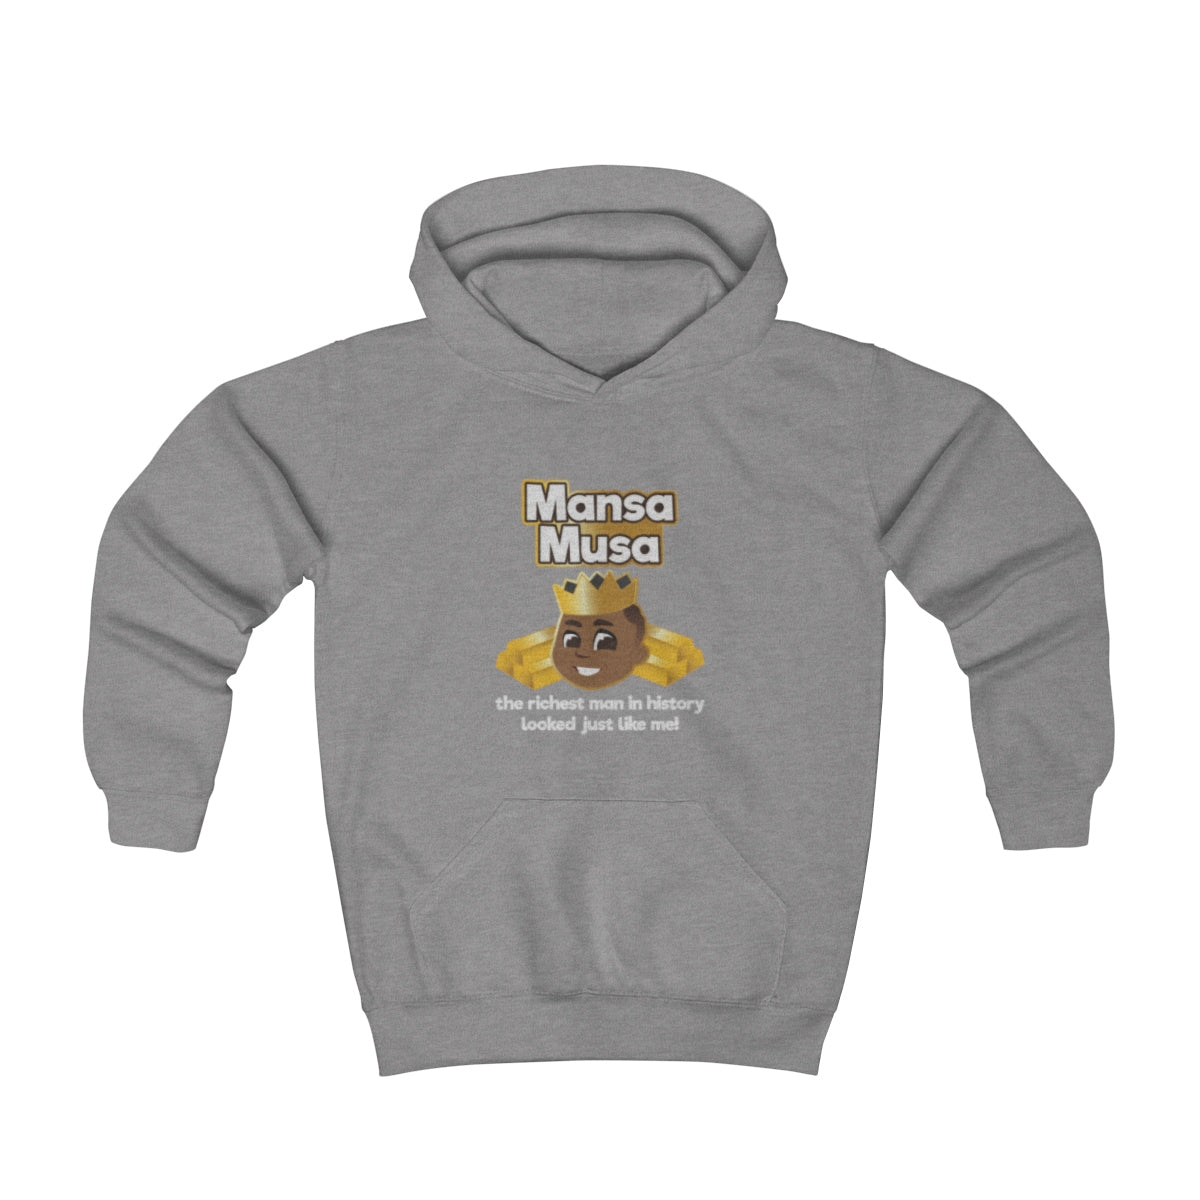 Great Is Who I am -Mansa Musa Toddler Hoodie